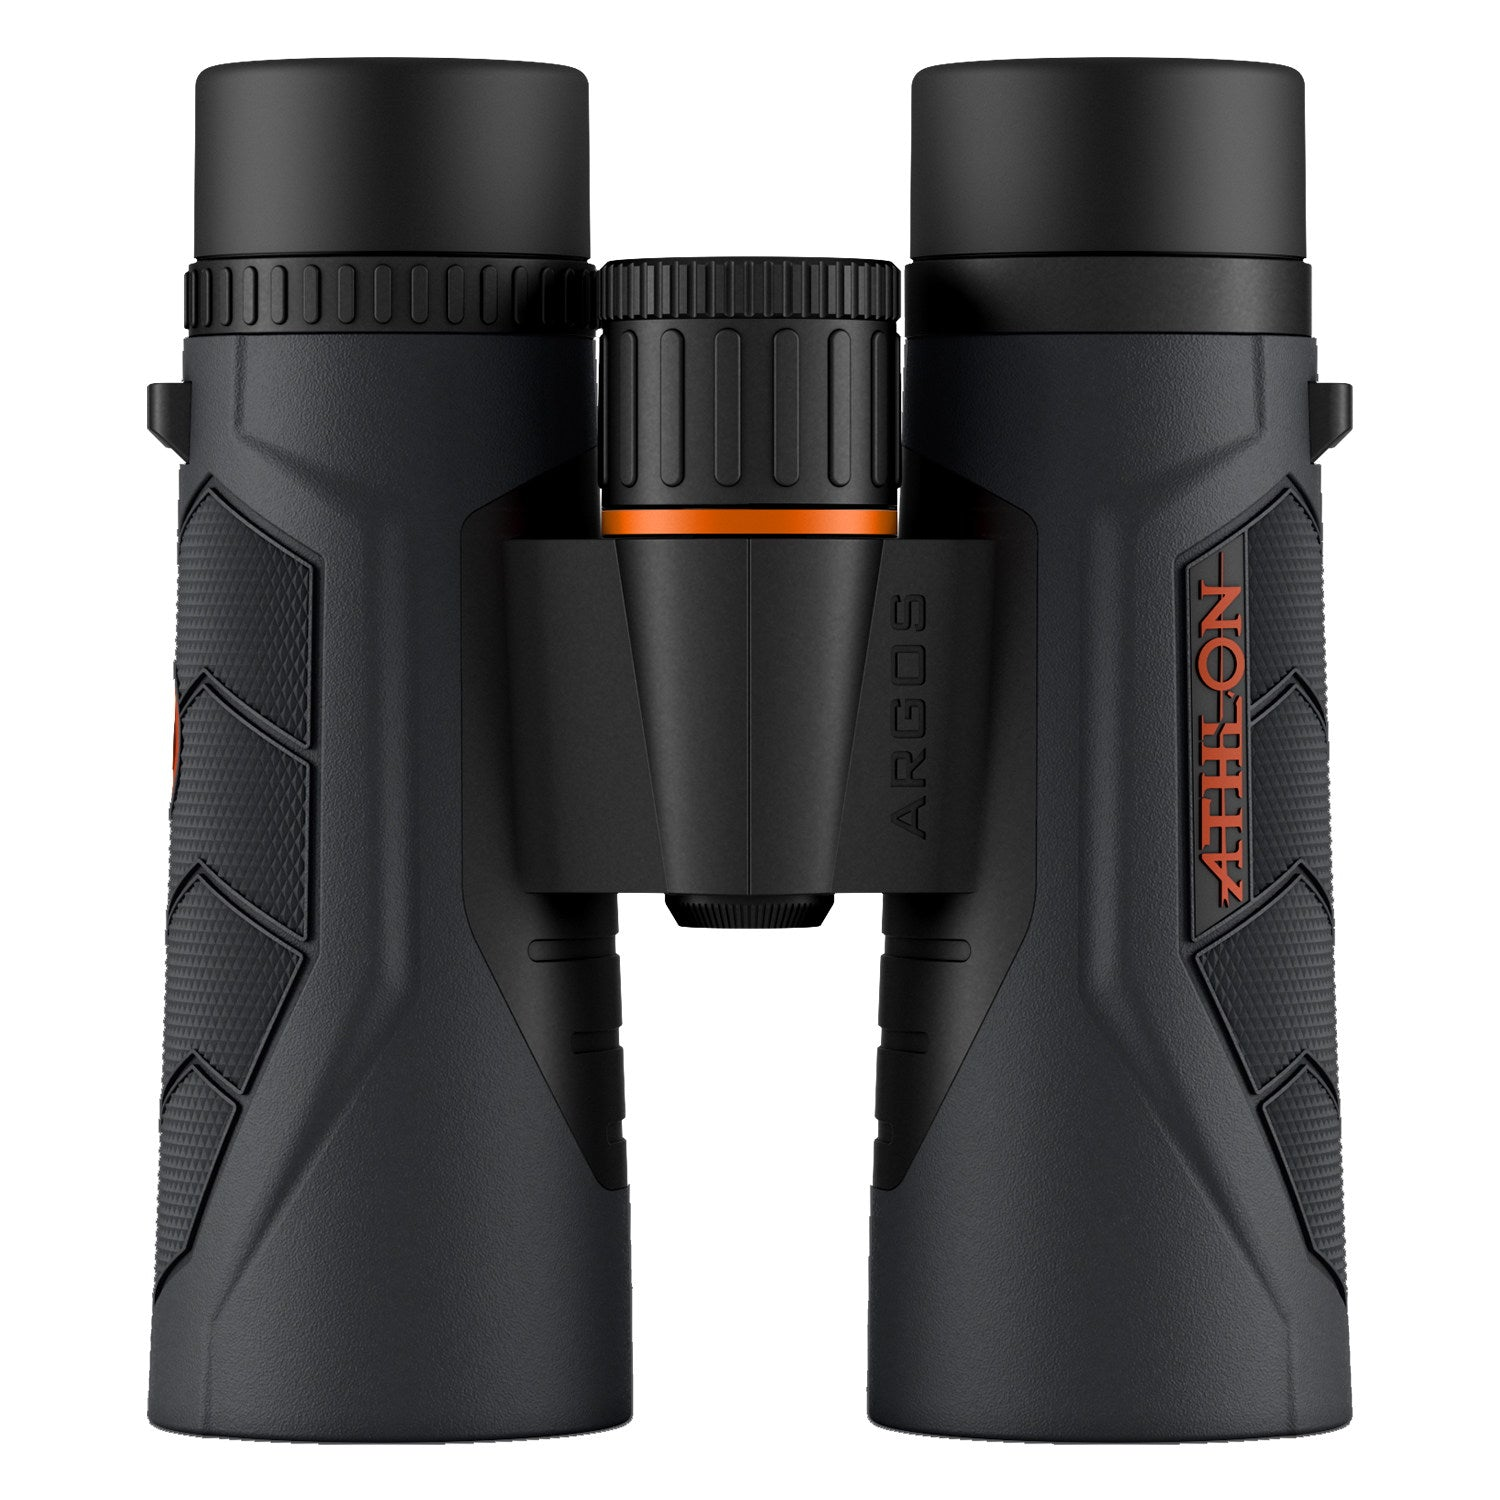 Athlon Optics Argos G2 8×42mm UHD Binoculars